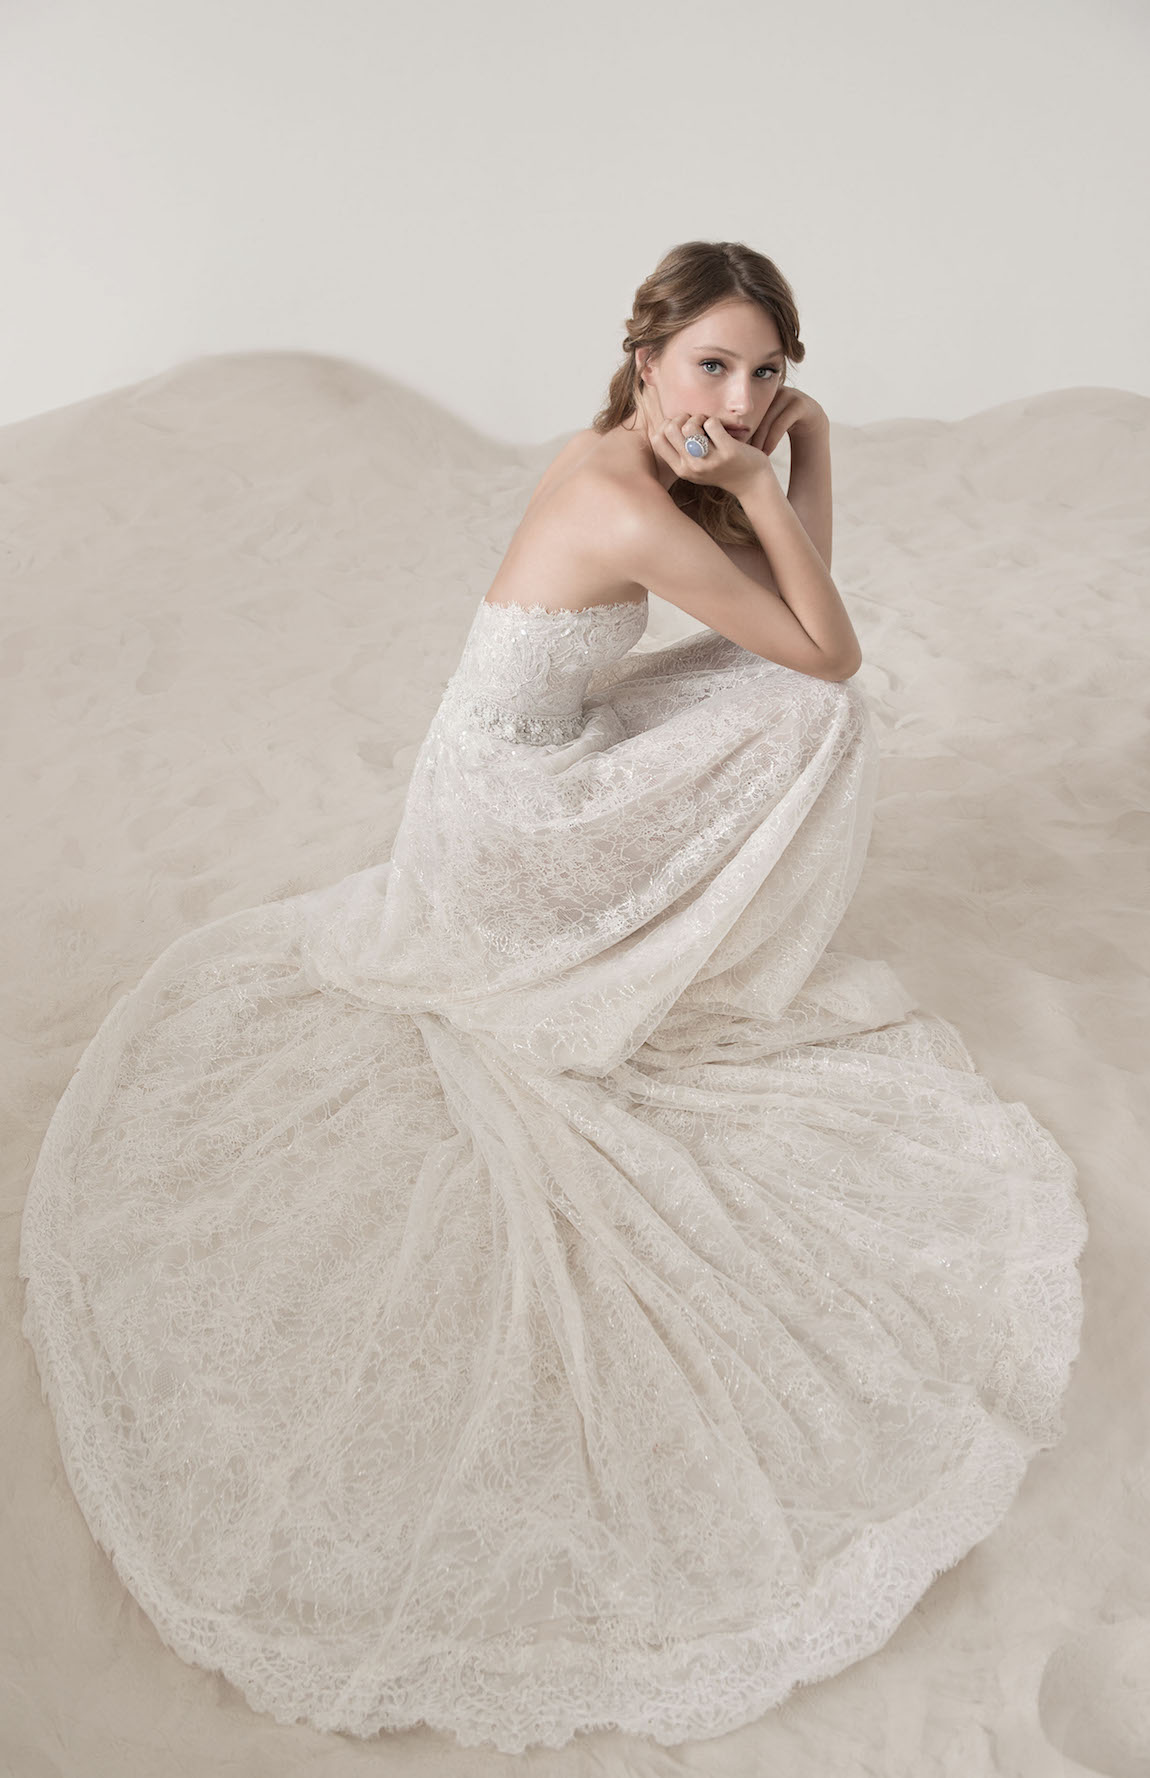 Lee Grebenau's 'Mother of Pearl' Collection